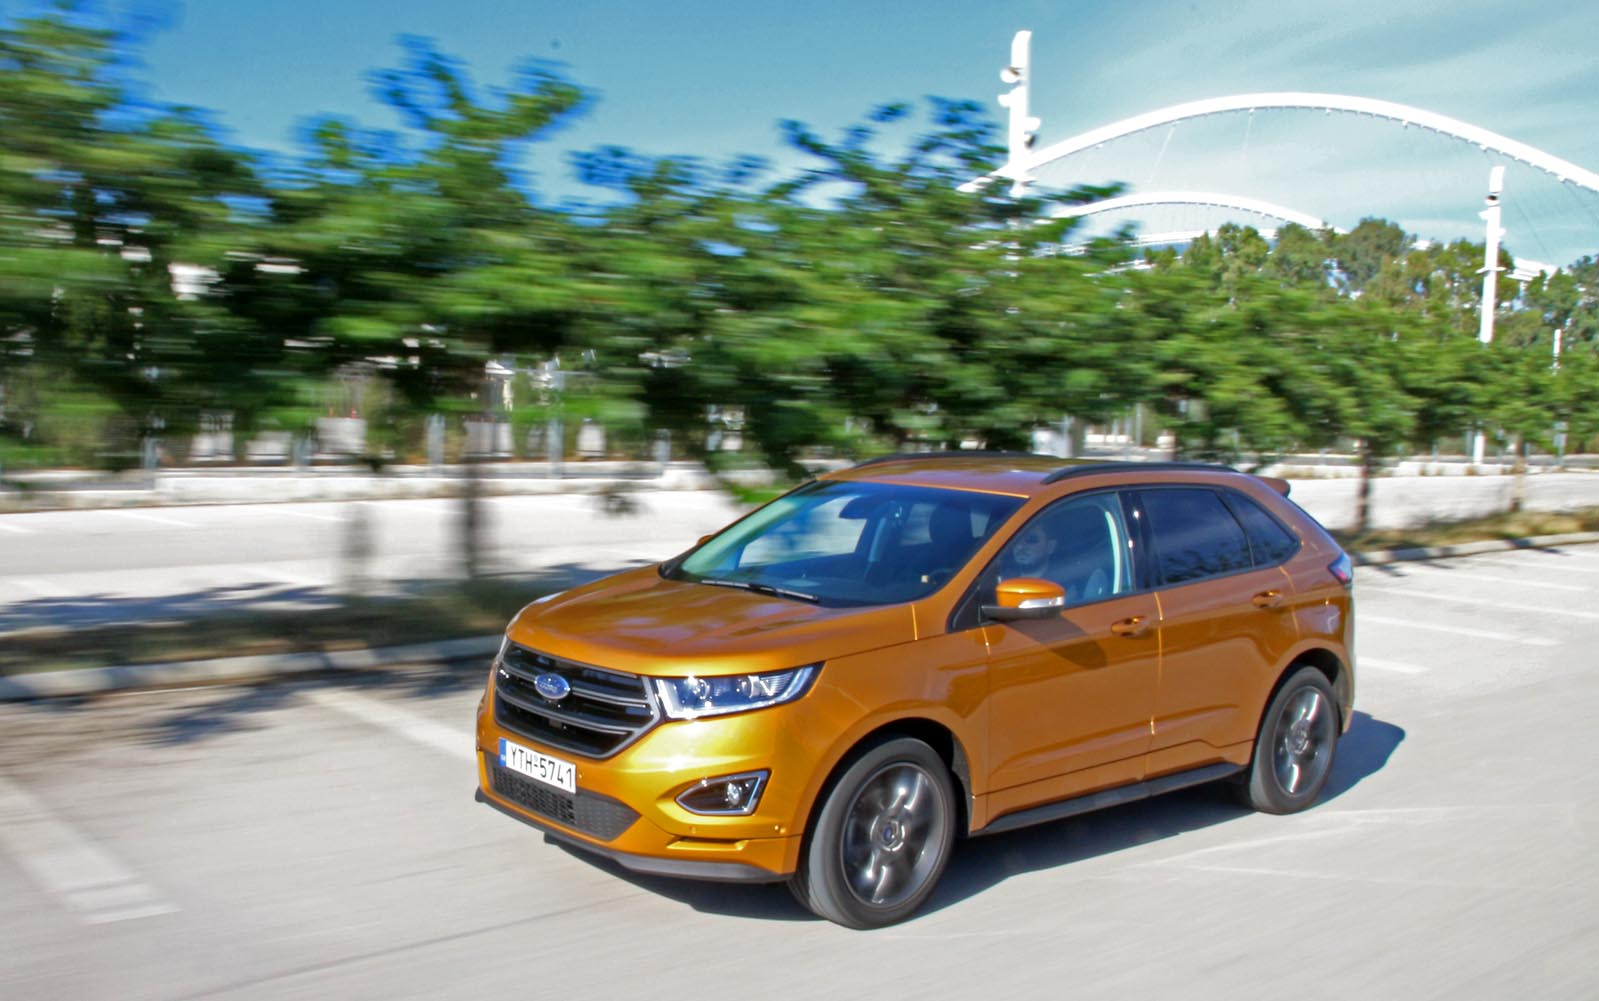 Photo of Ford Edge 2.0 TDCi 210 PS [test drive]